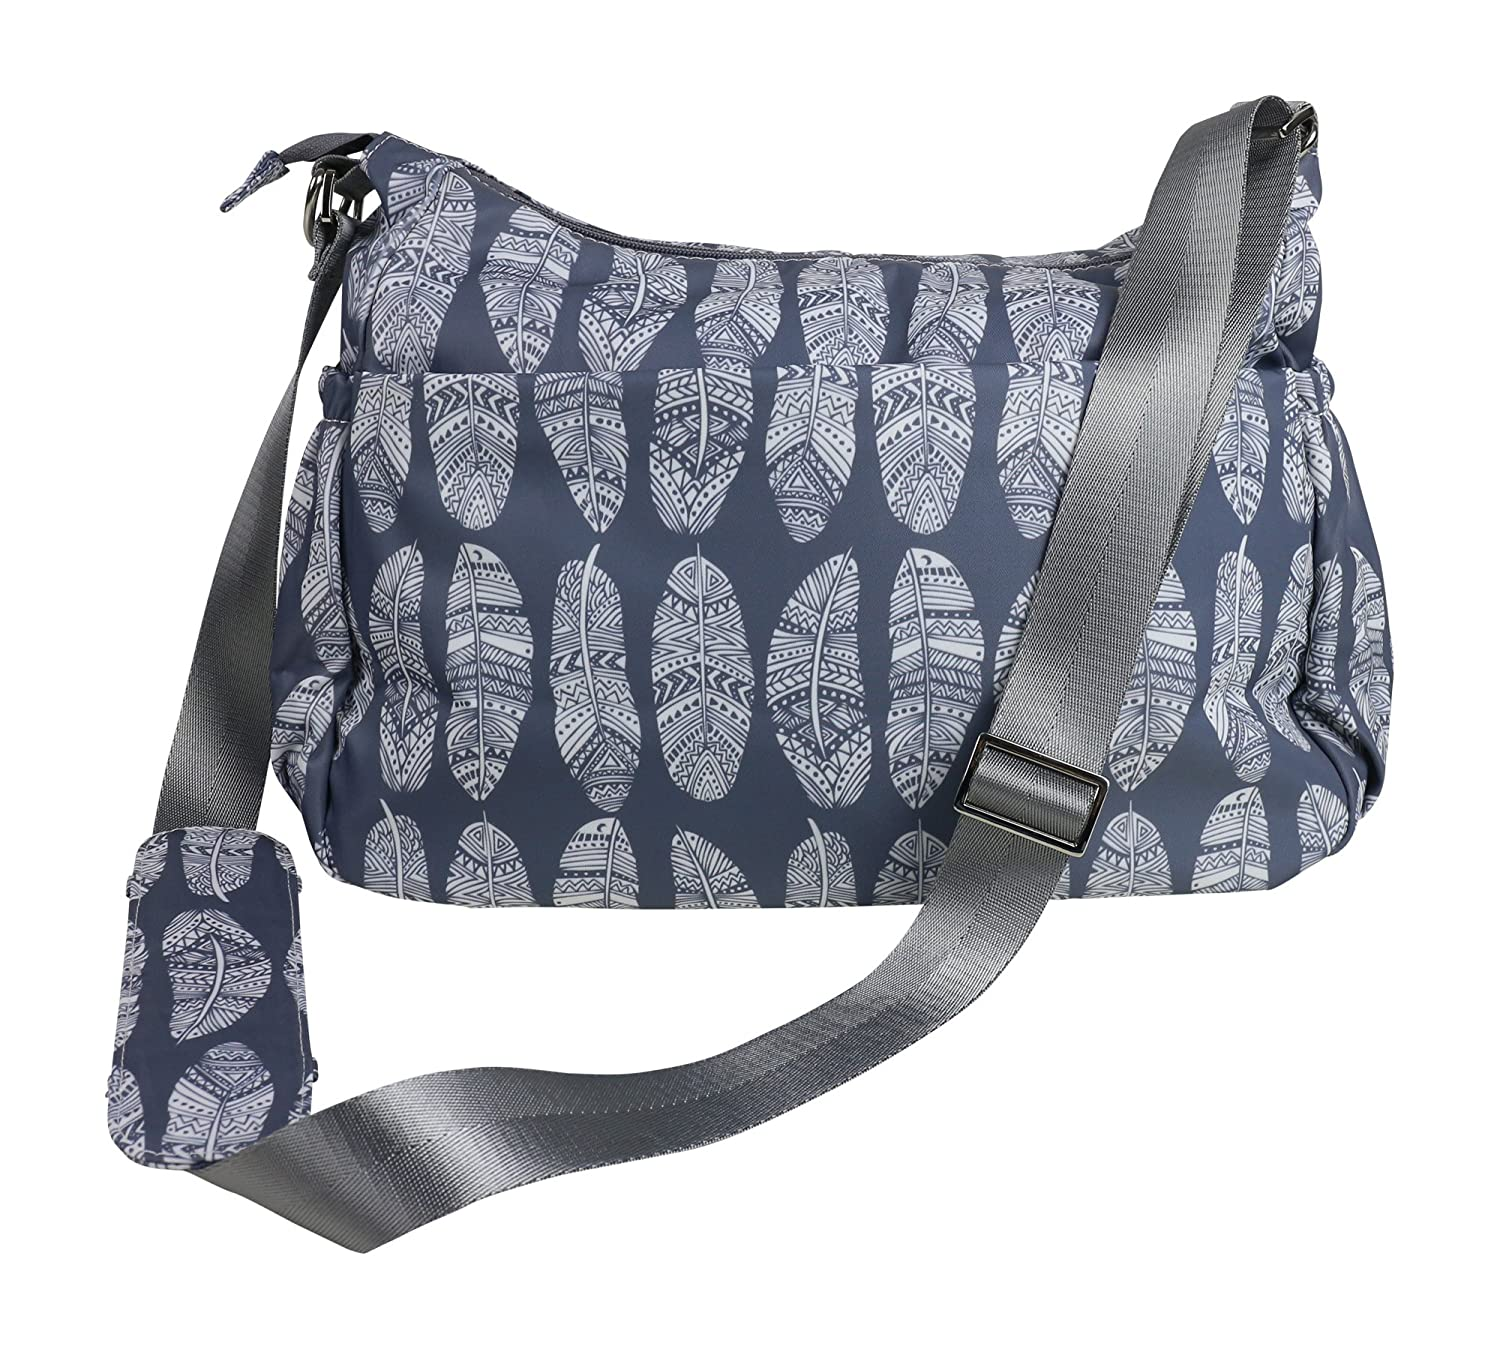 Adorology Spacious Crossbody Hobo Bags for Moms